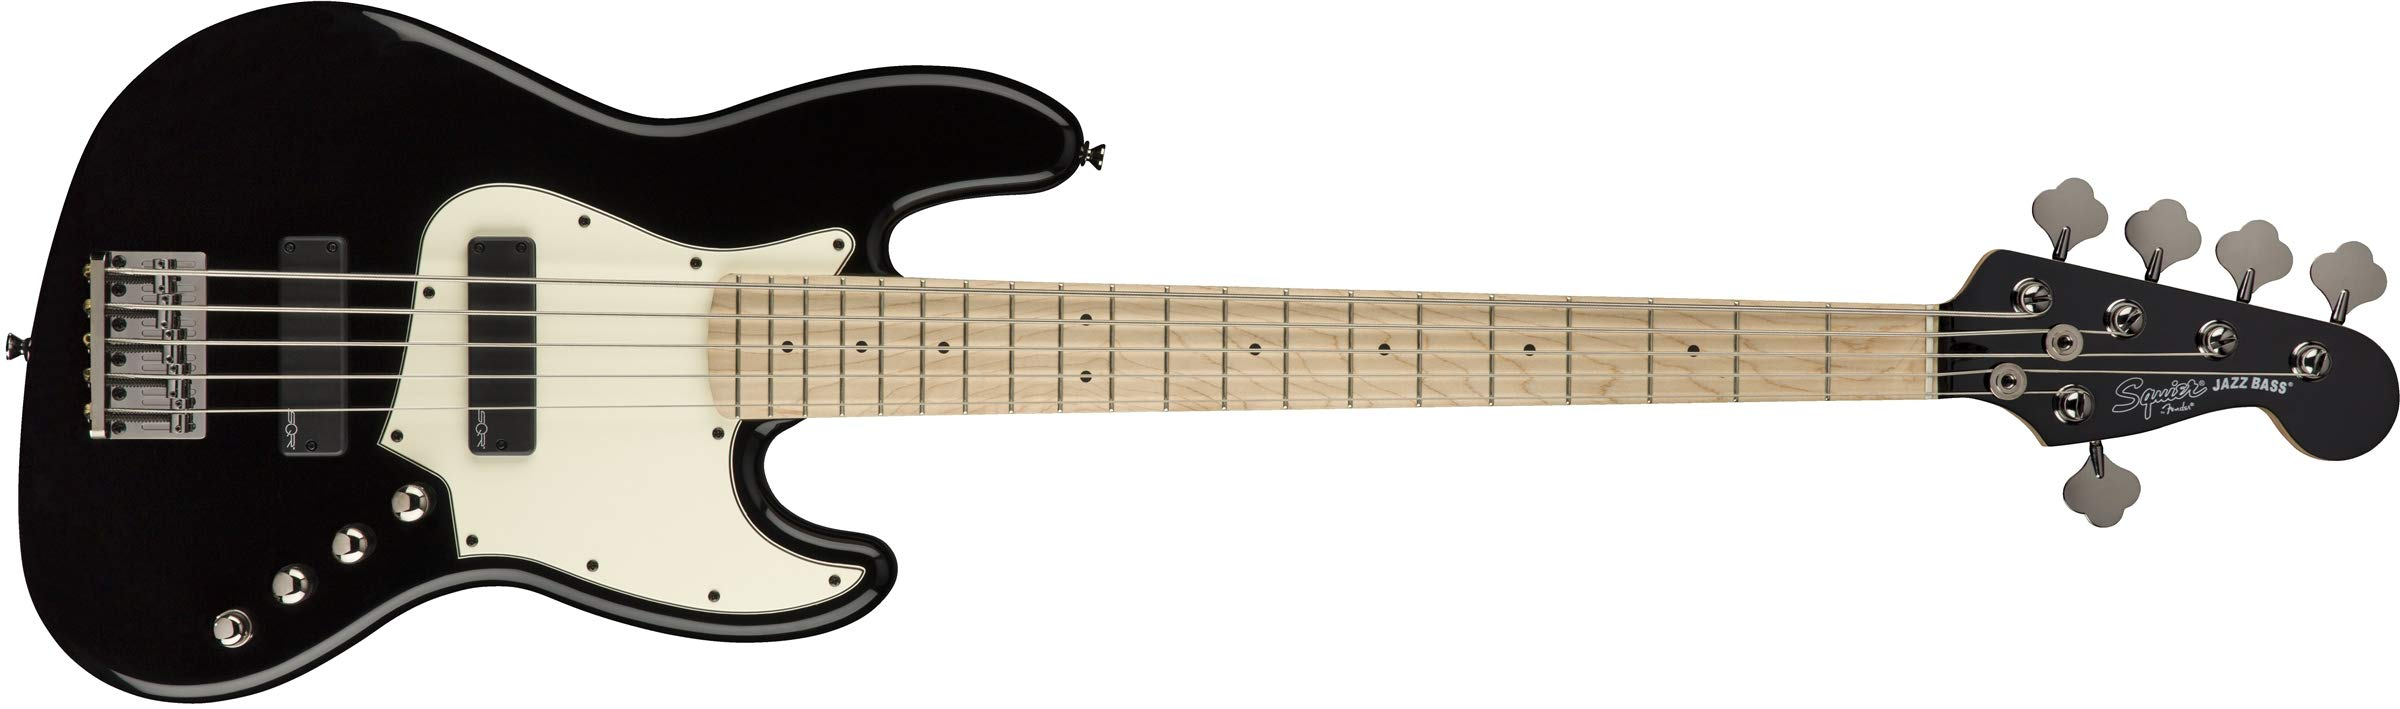 Squier by Fender Contemporary Active Jazz Bass V HH, Maple Fingerboard, Black by Fender (Image #1)